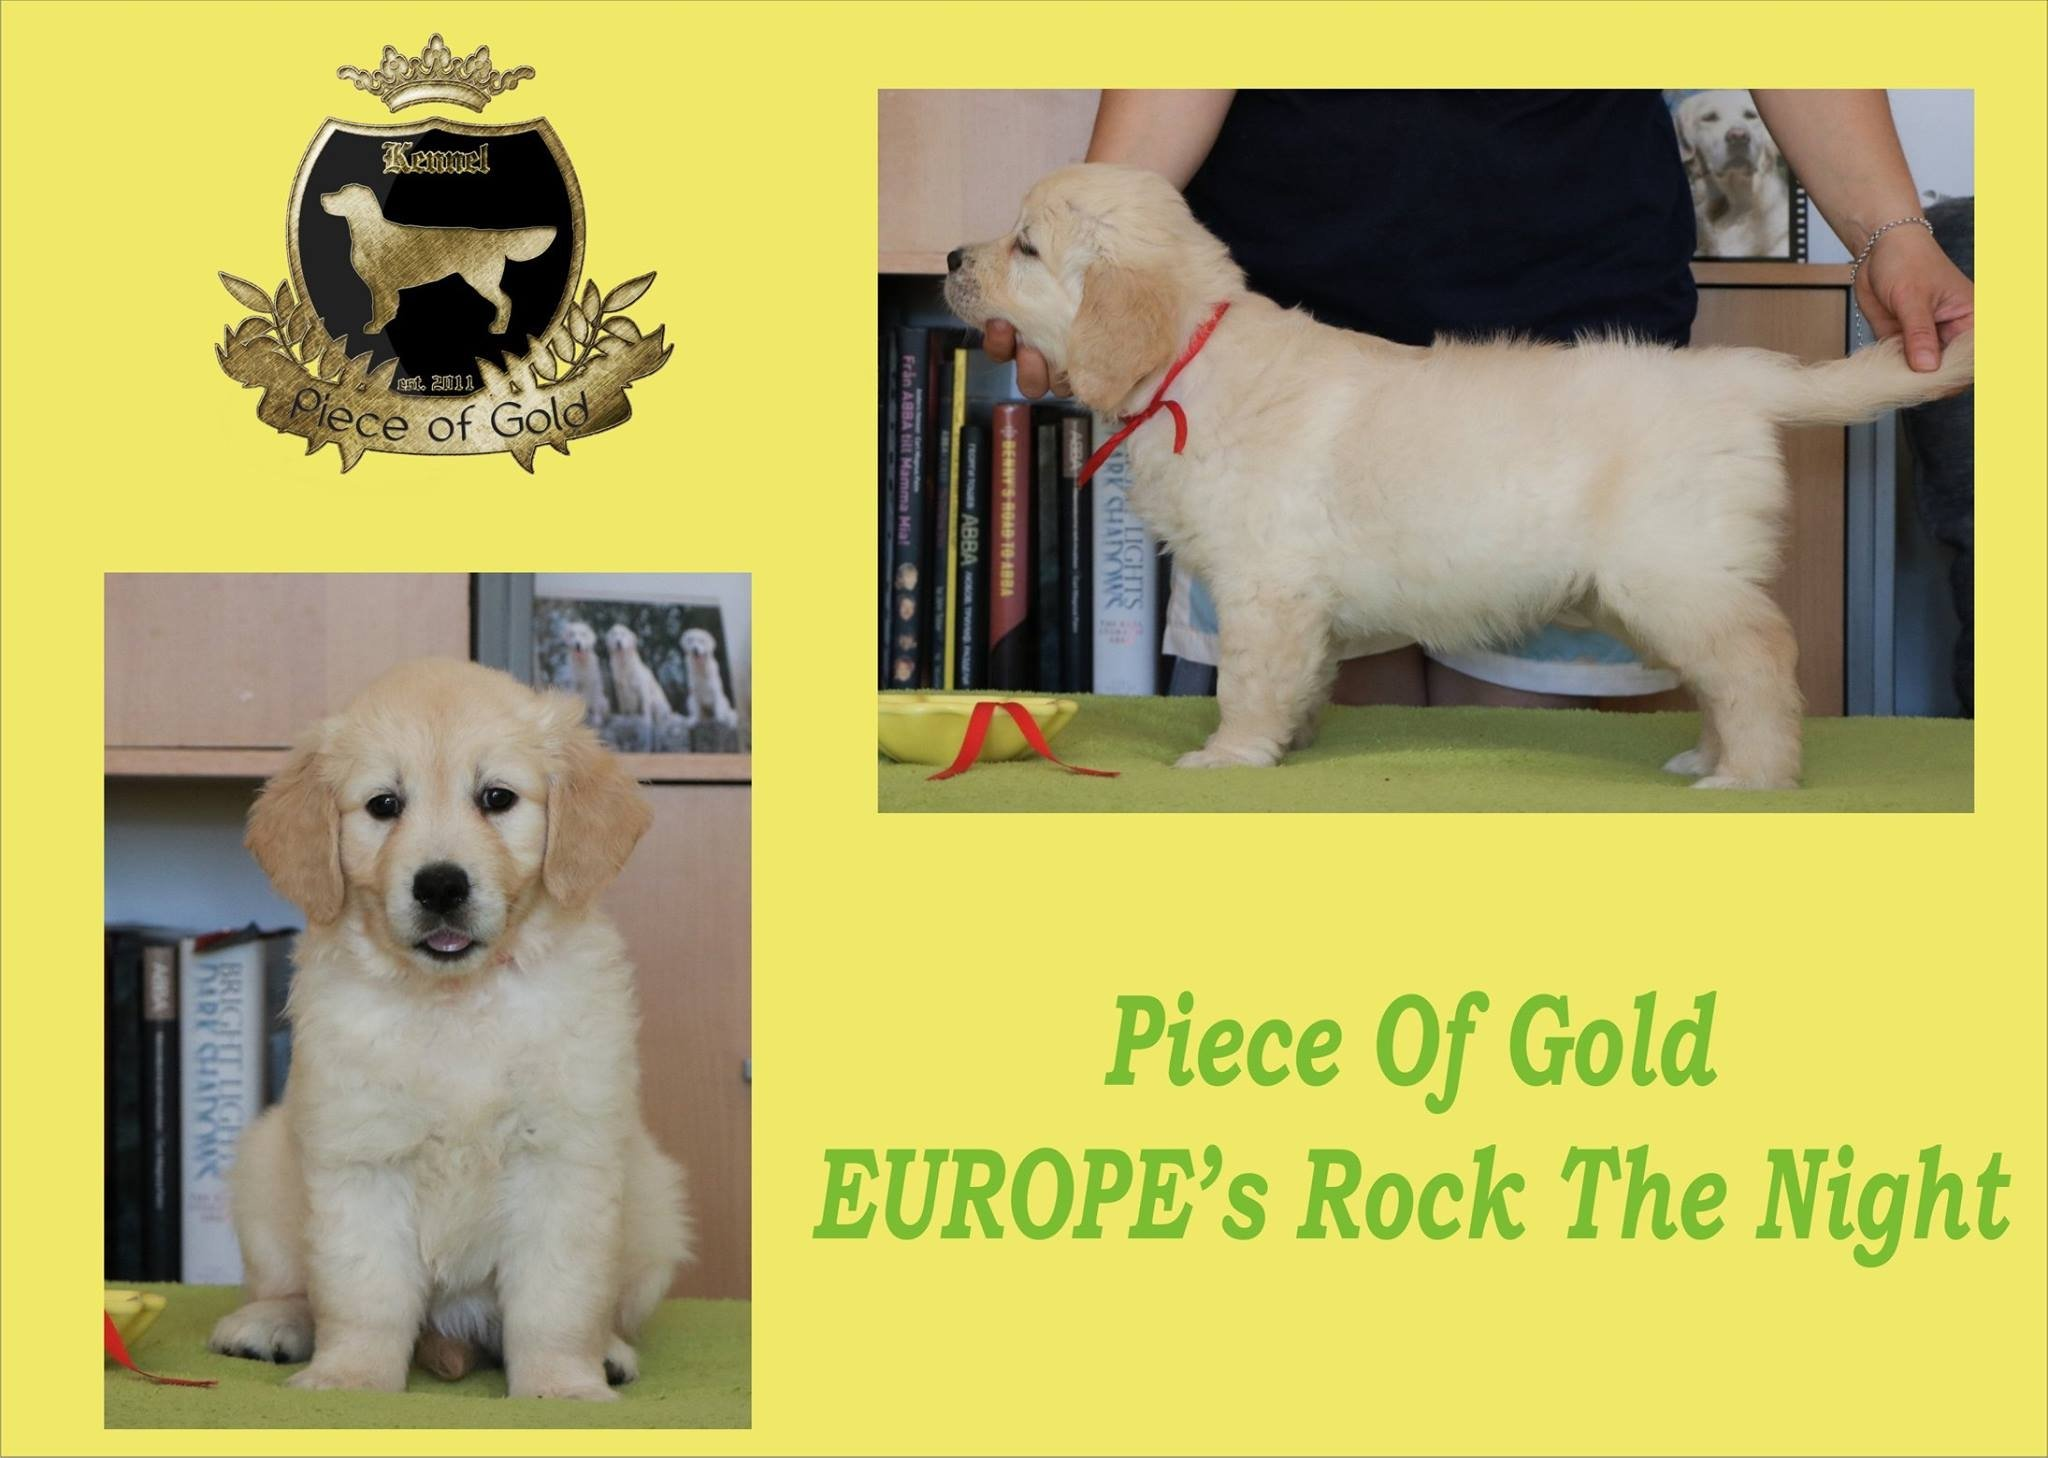 Piece Of Gold Europe's Rock The Night - Fifty